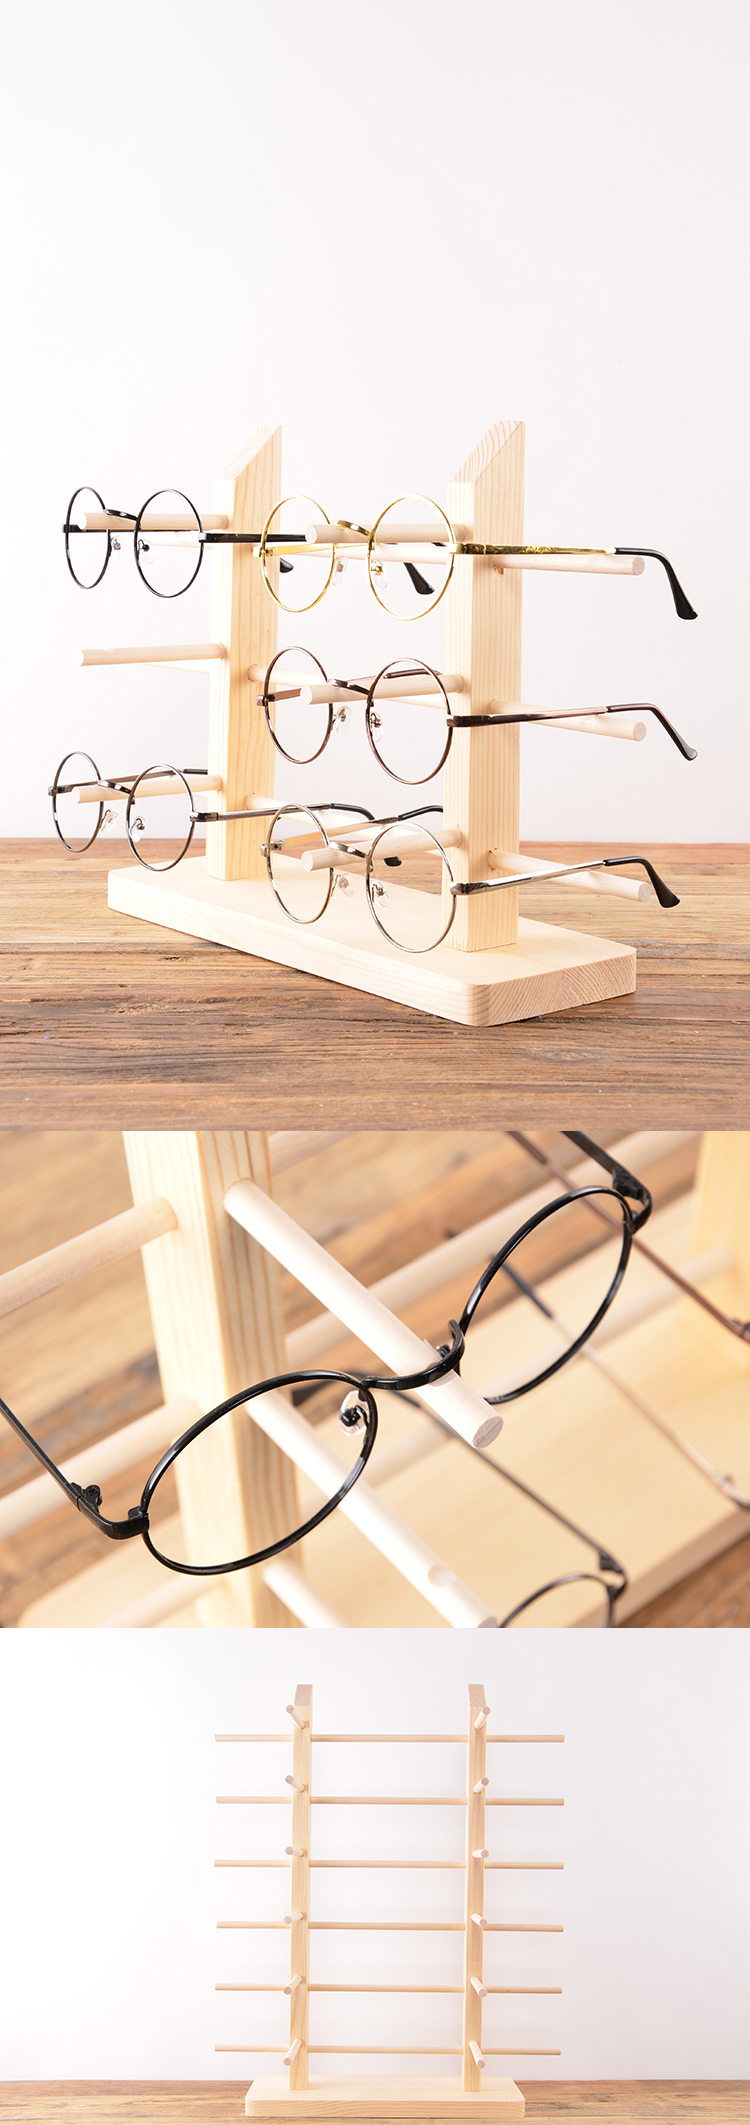 Wooden Eyewear Display Rack For Eyeglasses Store